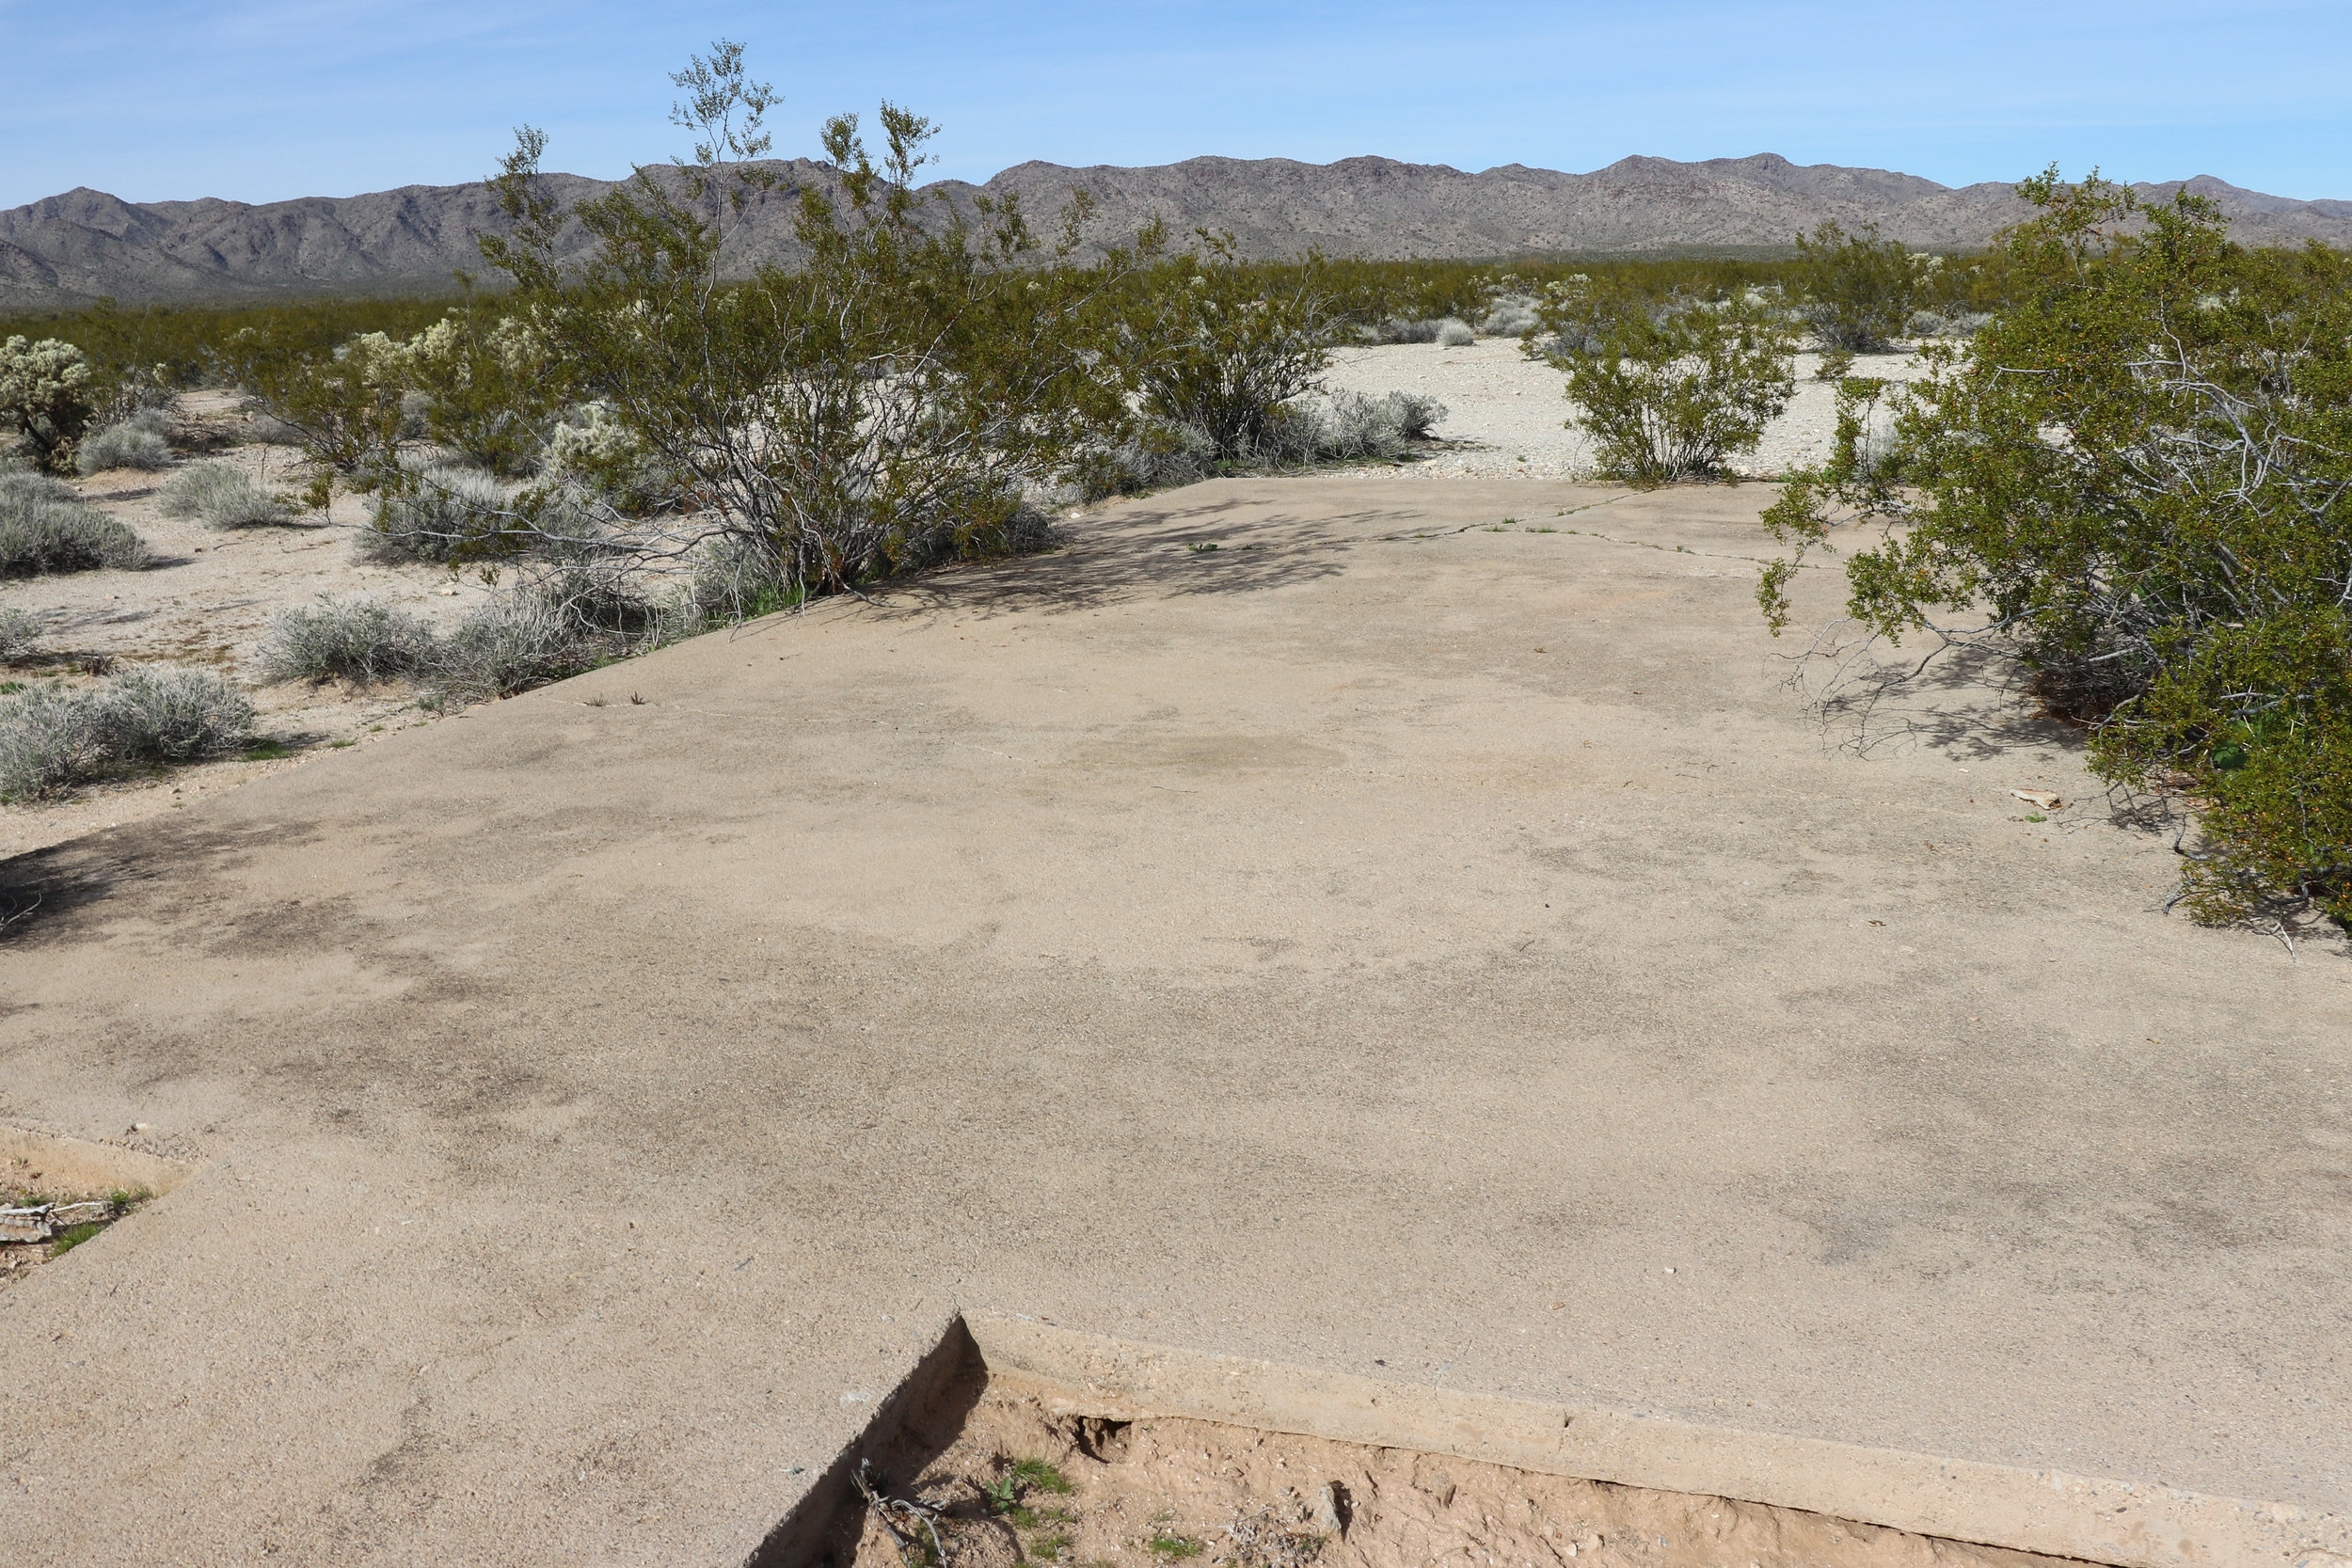 The pad where the hospital would have stood.